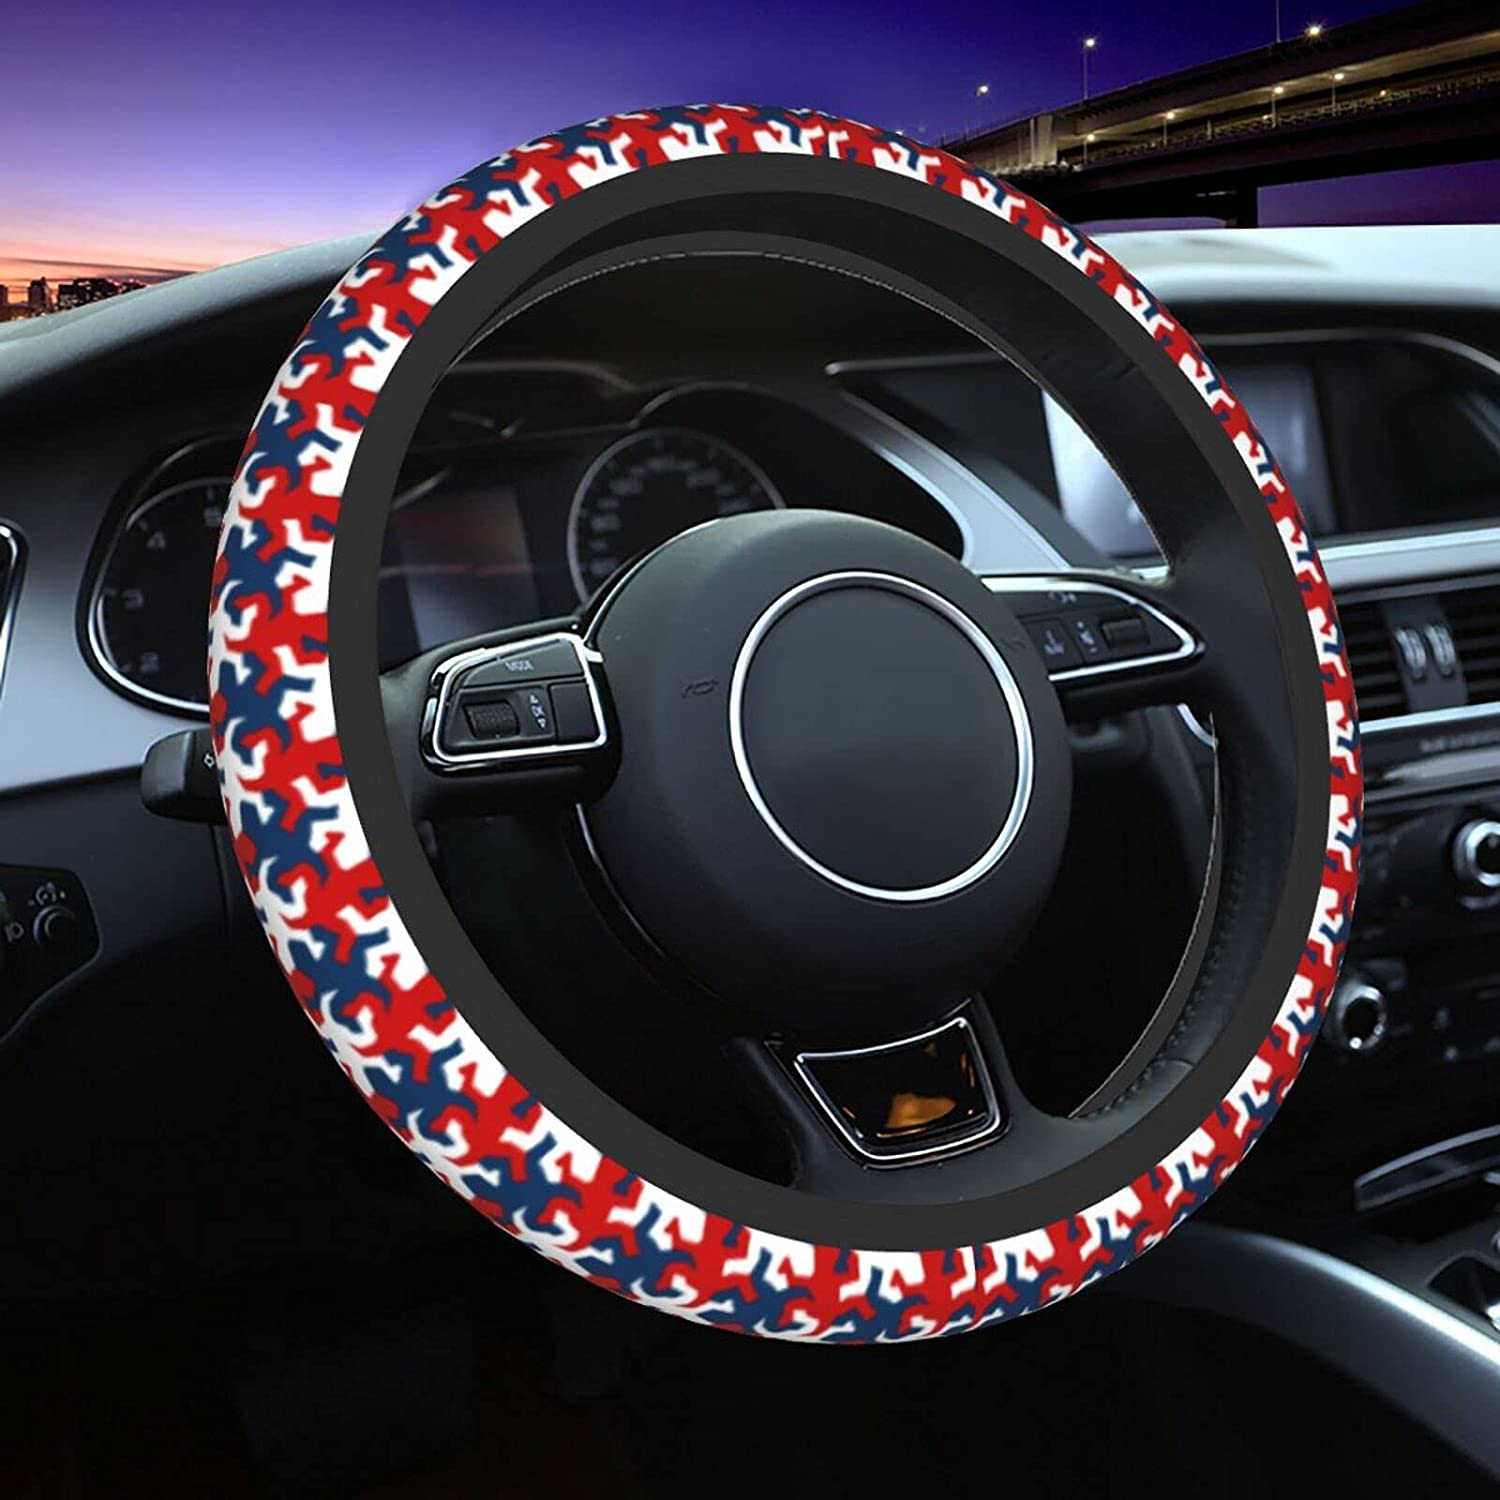 Direct store Red And White Lizards New arrival Silhouette Wheel Car Unive Steering Cover